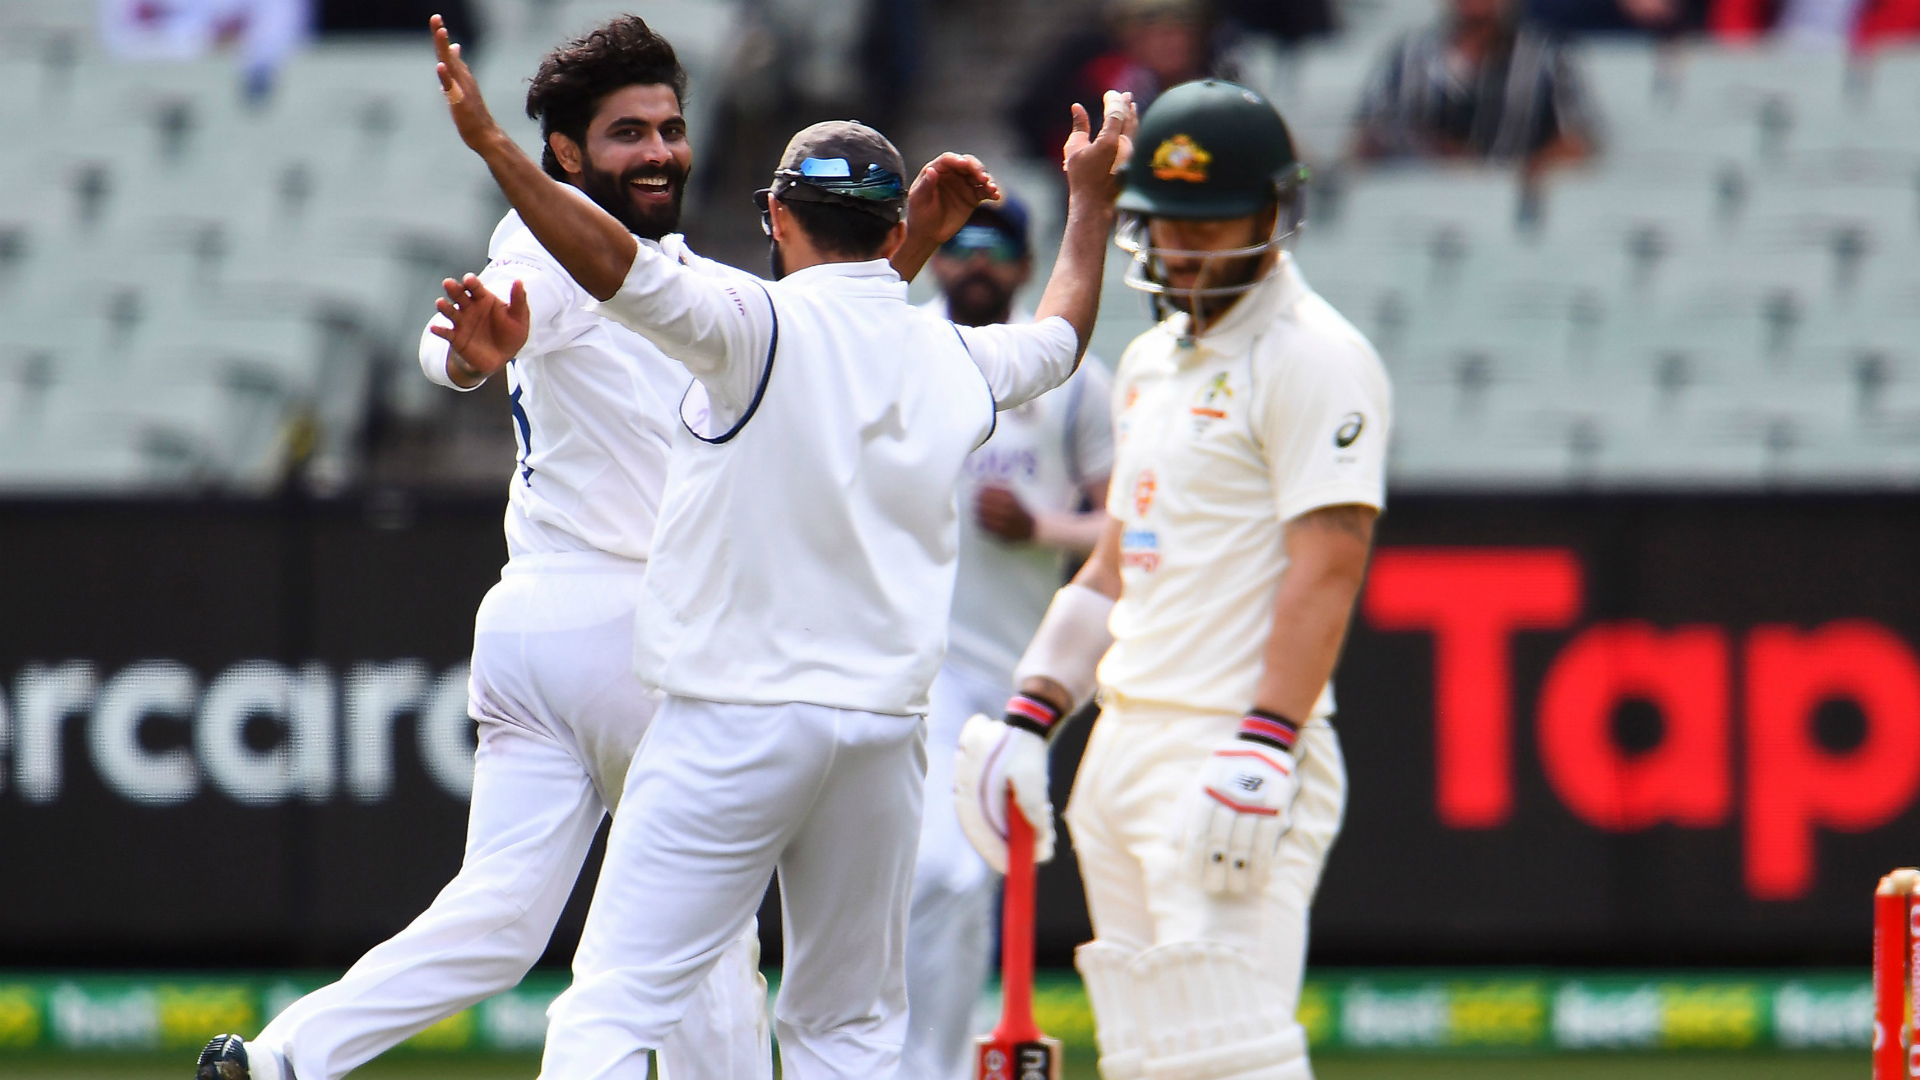 India in box seat to level series following Australia's batting woes